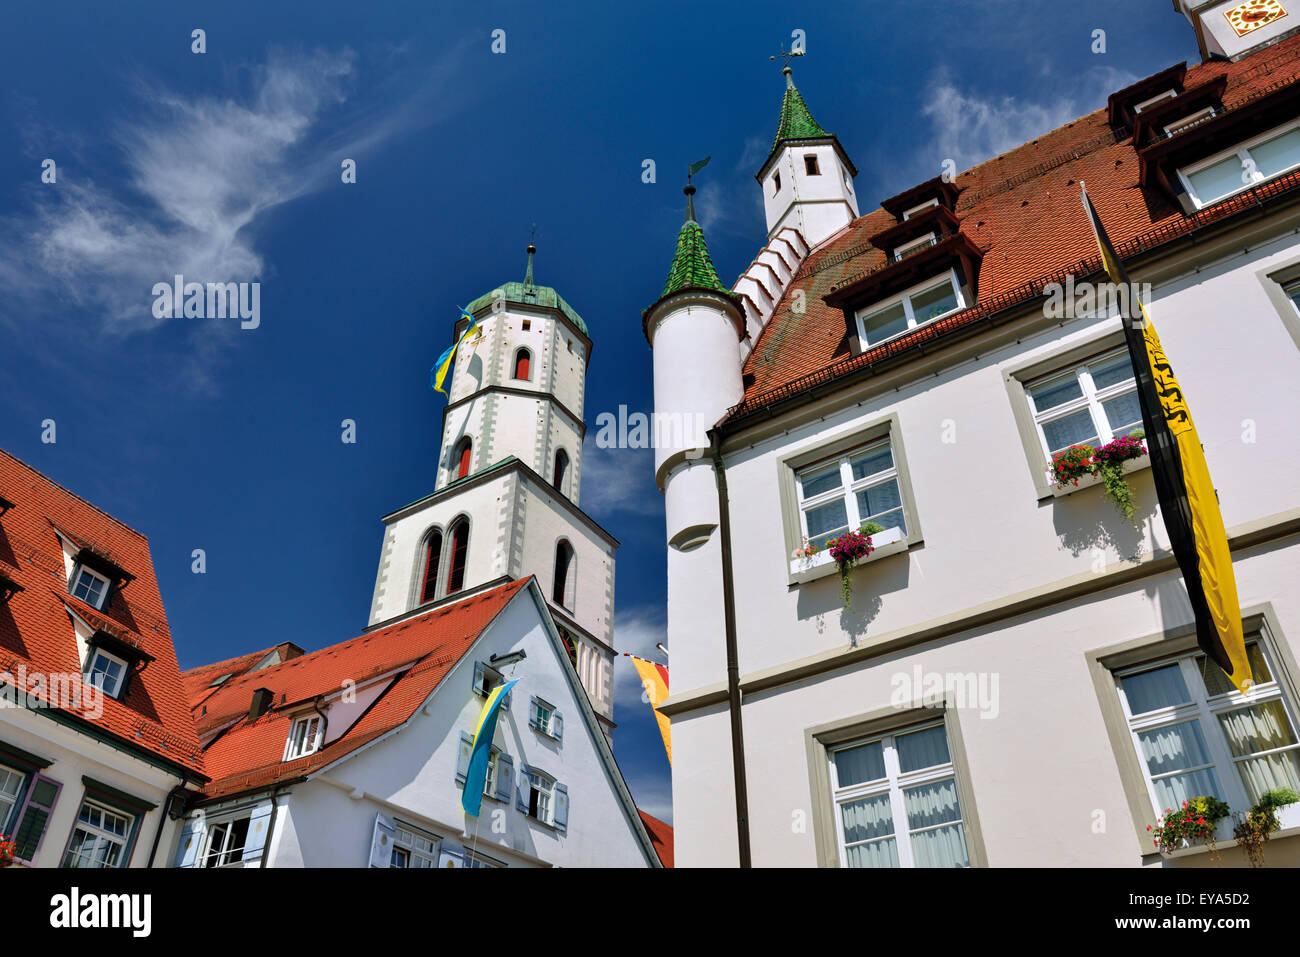 Germany, Baden-Württemberg: Detail of the church tower and typical houses in Biberach an der Riss - Stock Image